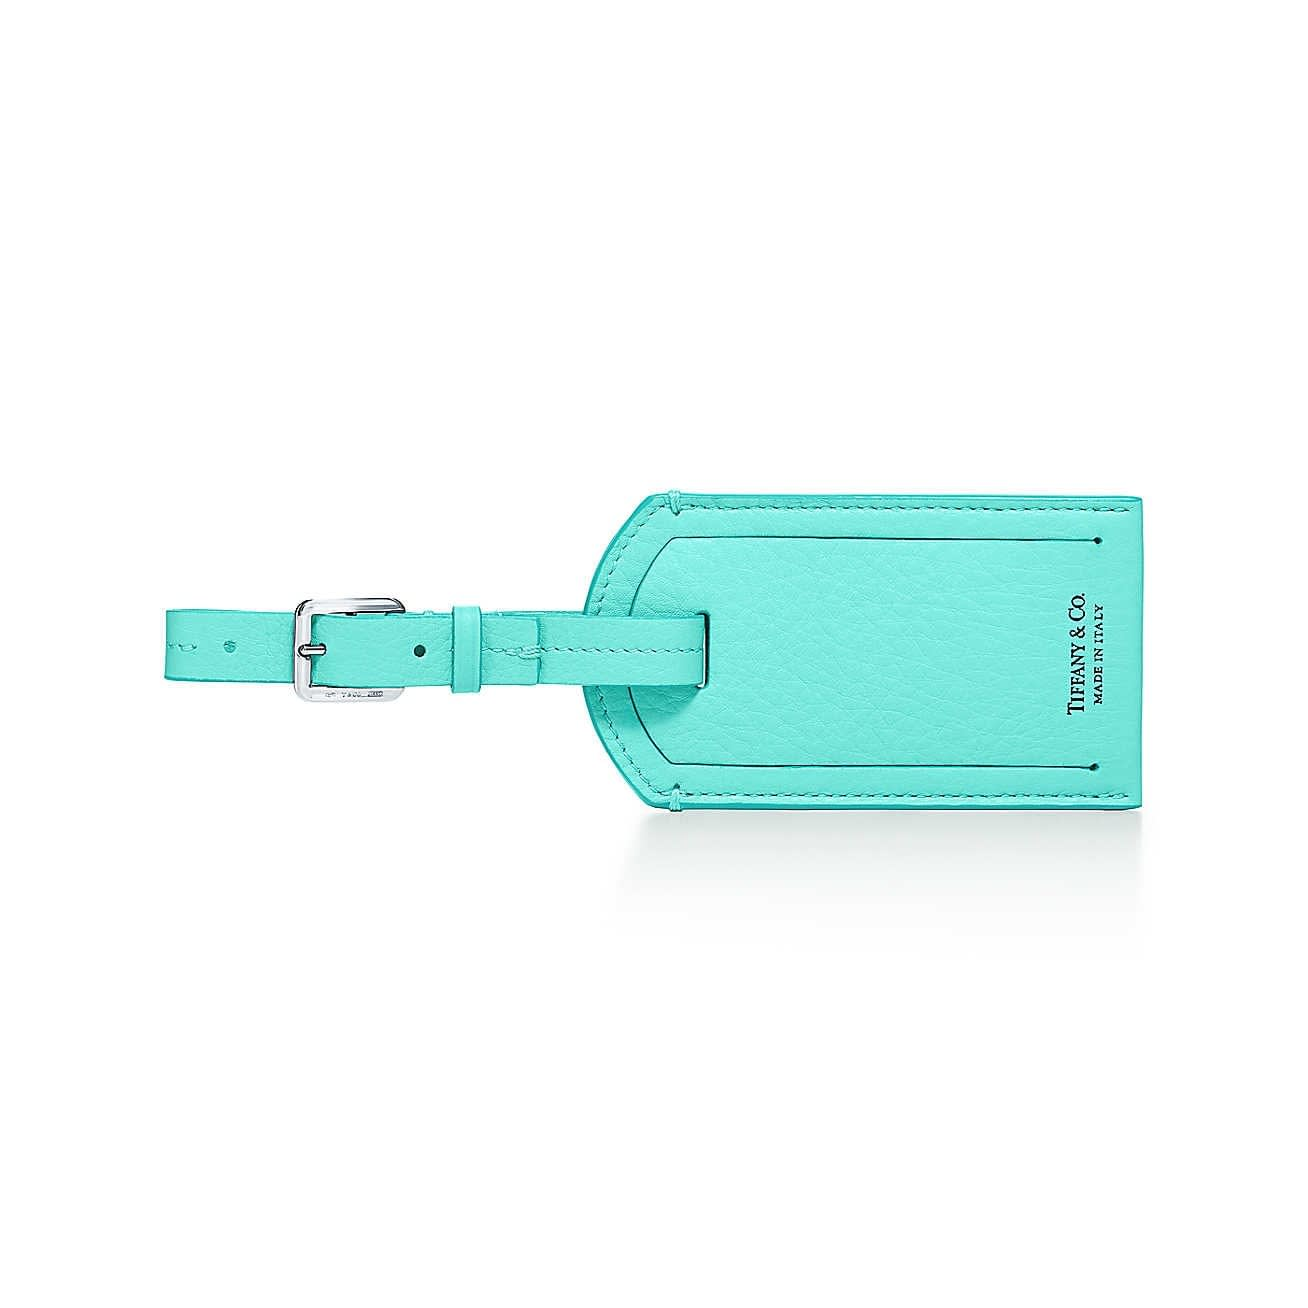 Mothers Day Gift ideas from Newport Living and Lifestyles Tiffany & Co. Luggage Tag $200